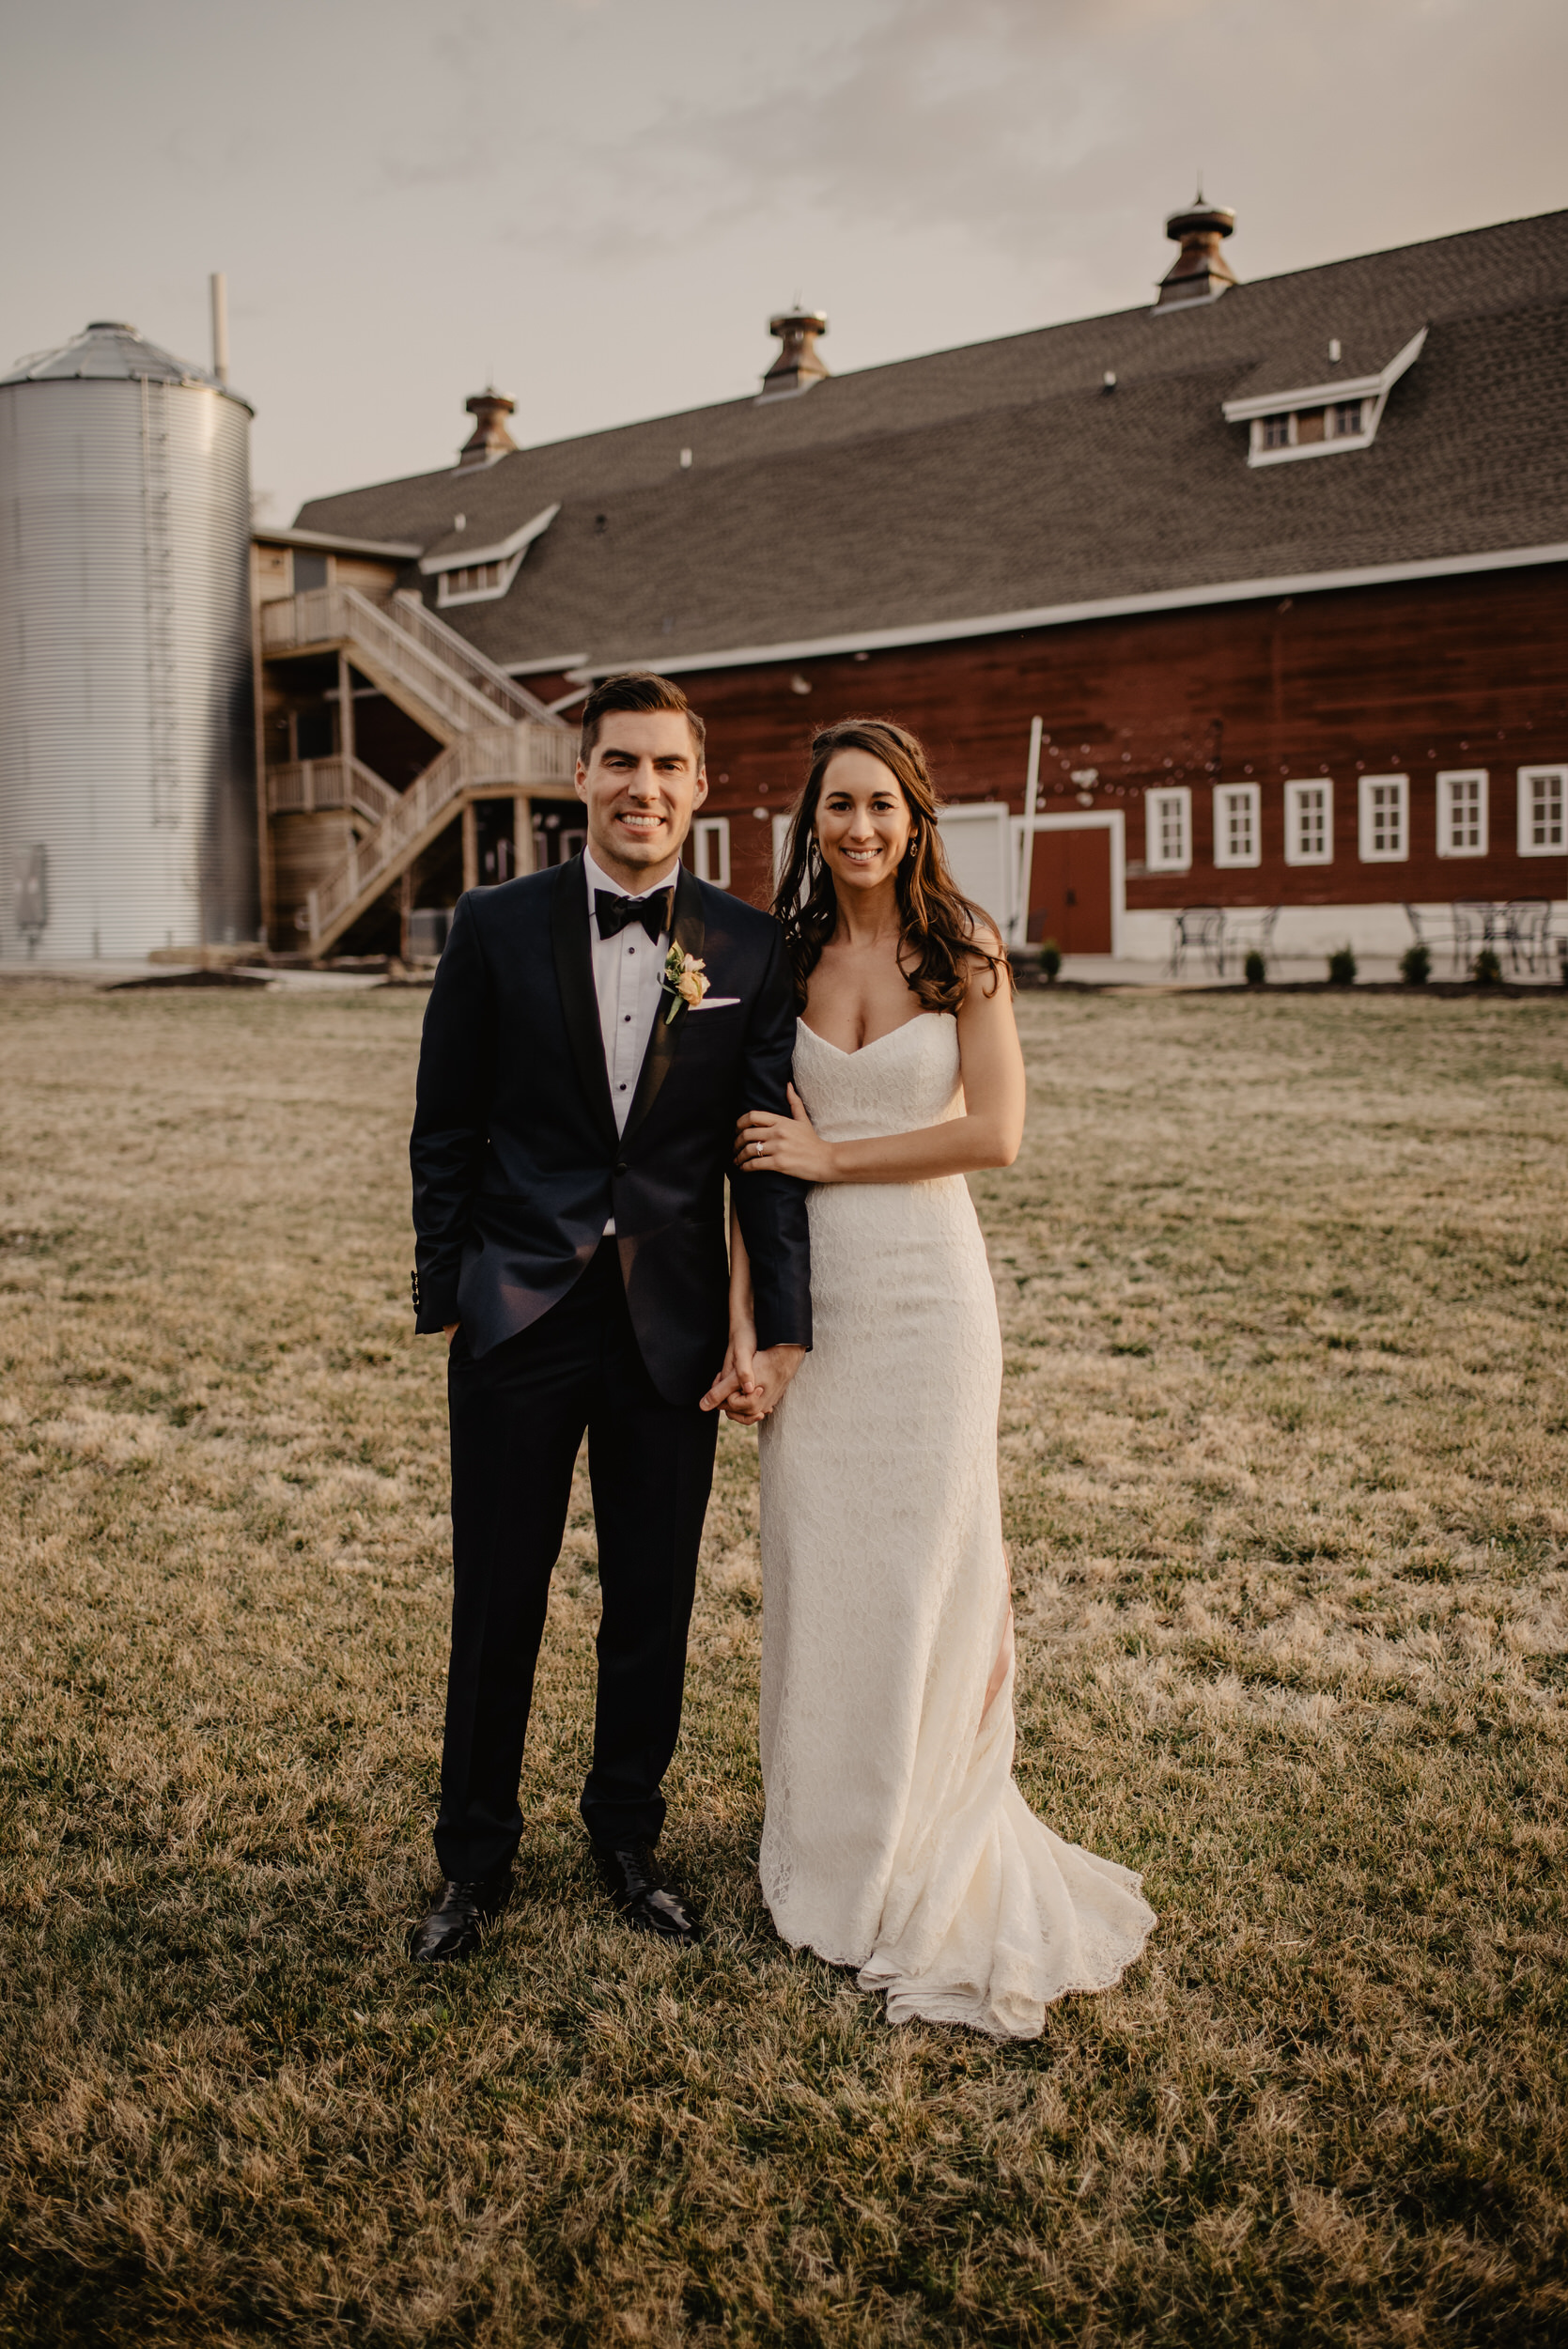 The Barn at the Ackerhurst Dairy Farm Omaha Nebraska Wedding Kaylie Sirek Photography093.jpg